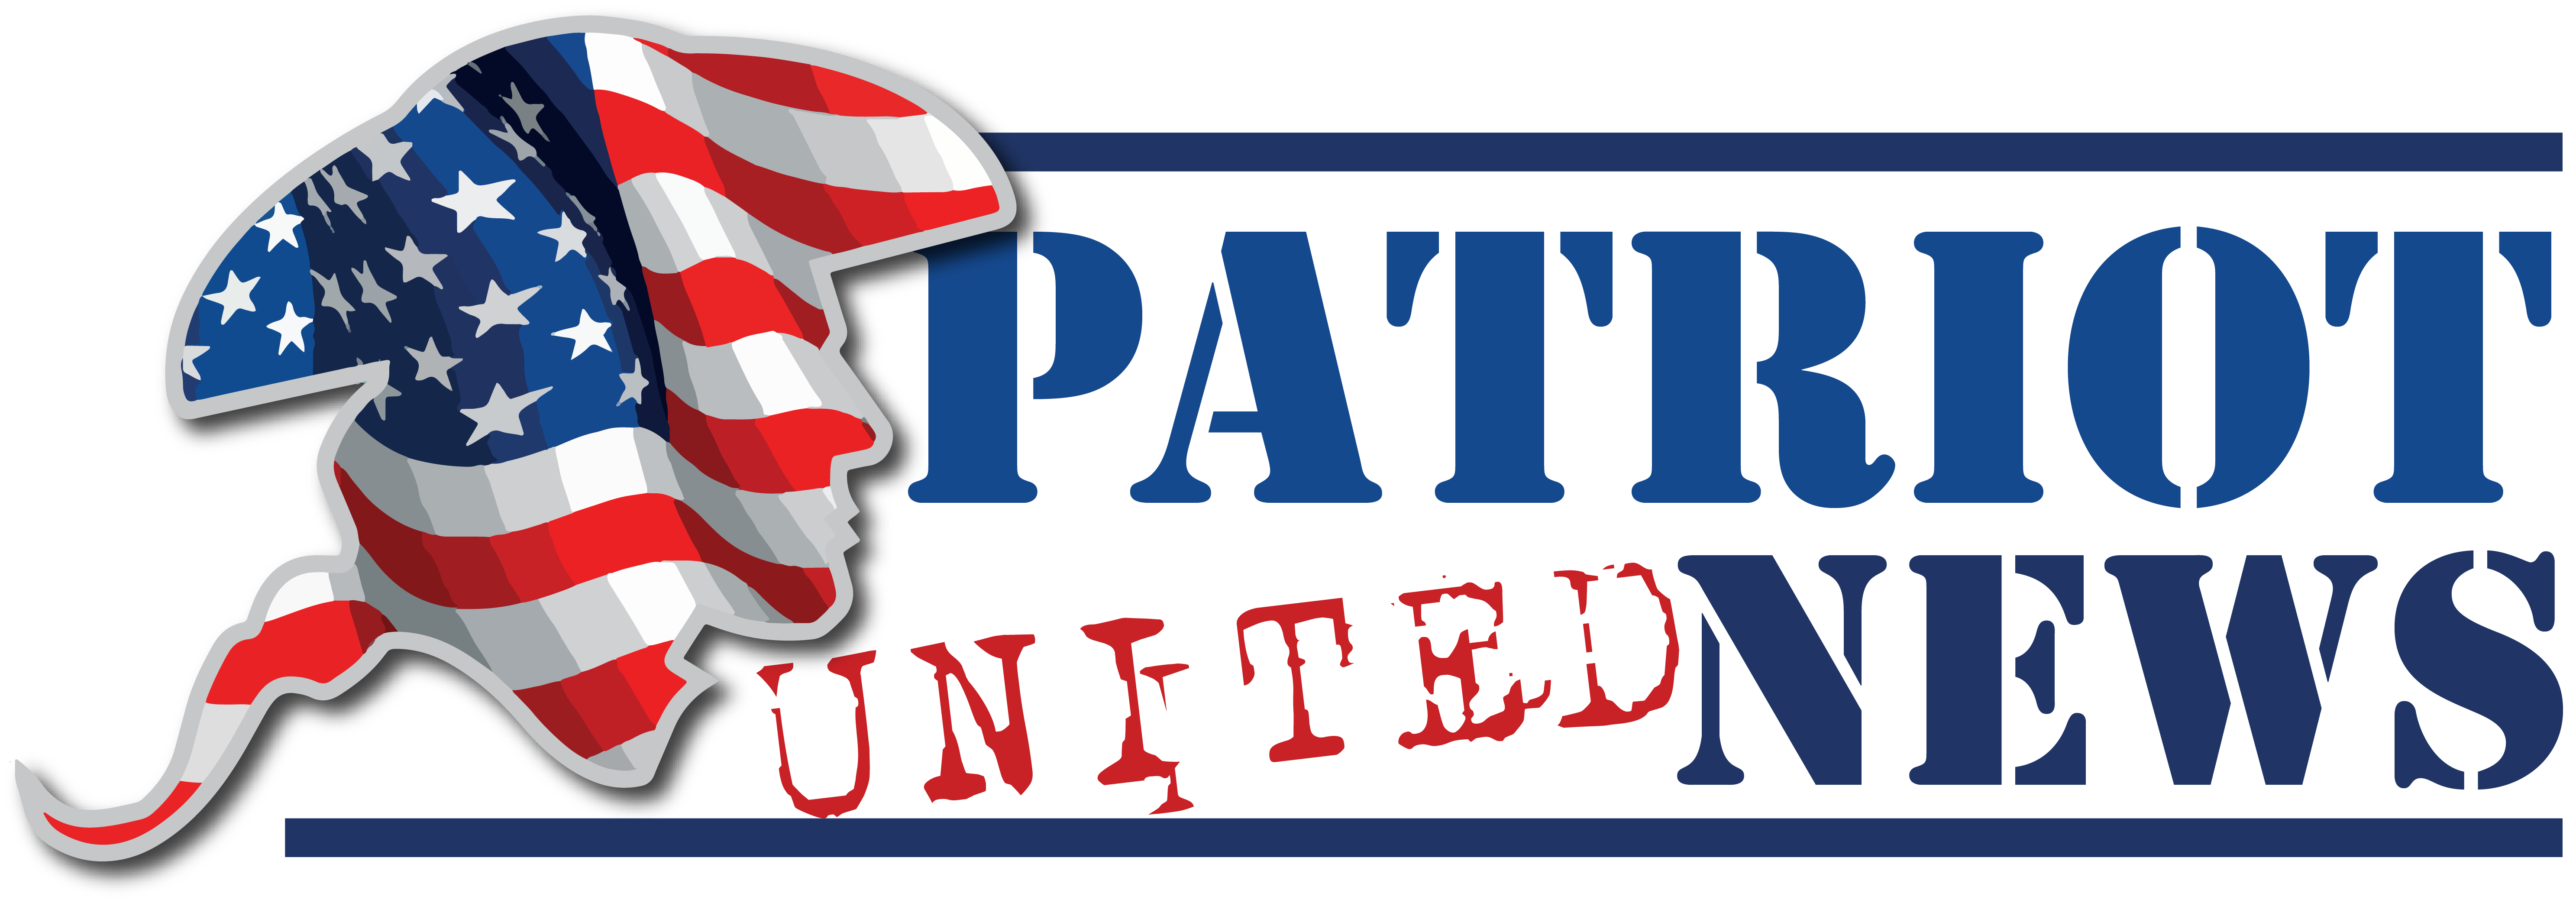 Patriot United News